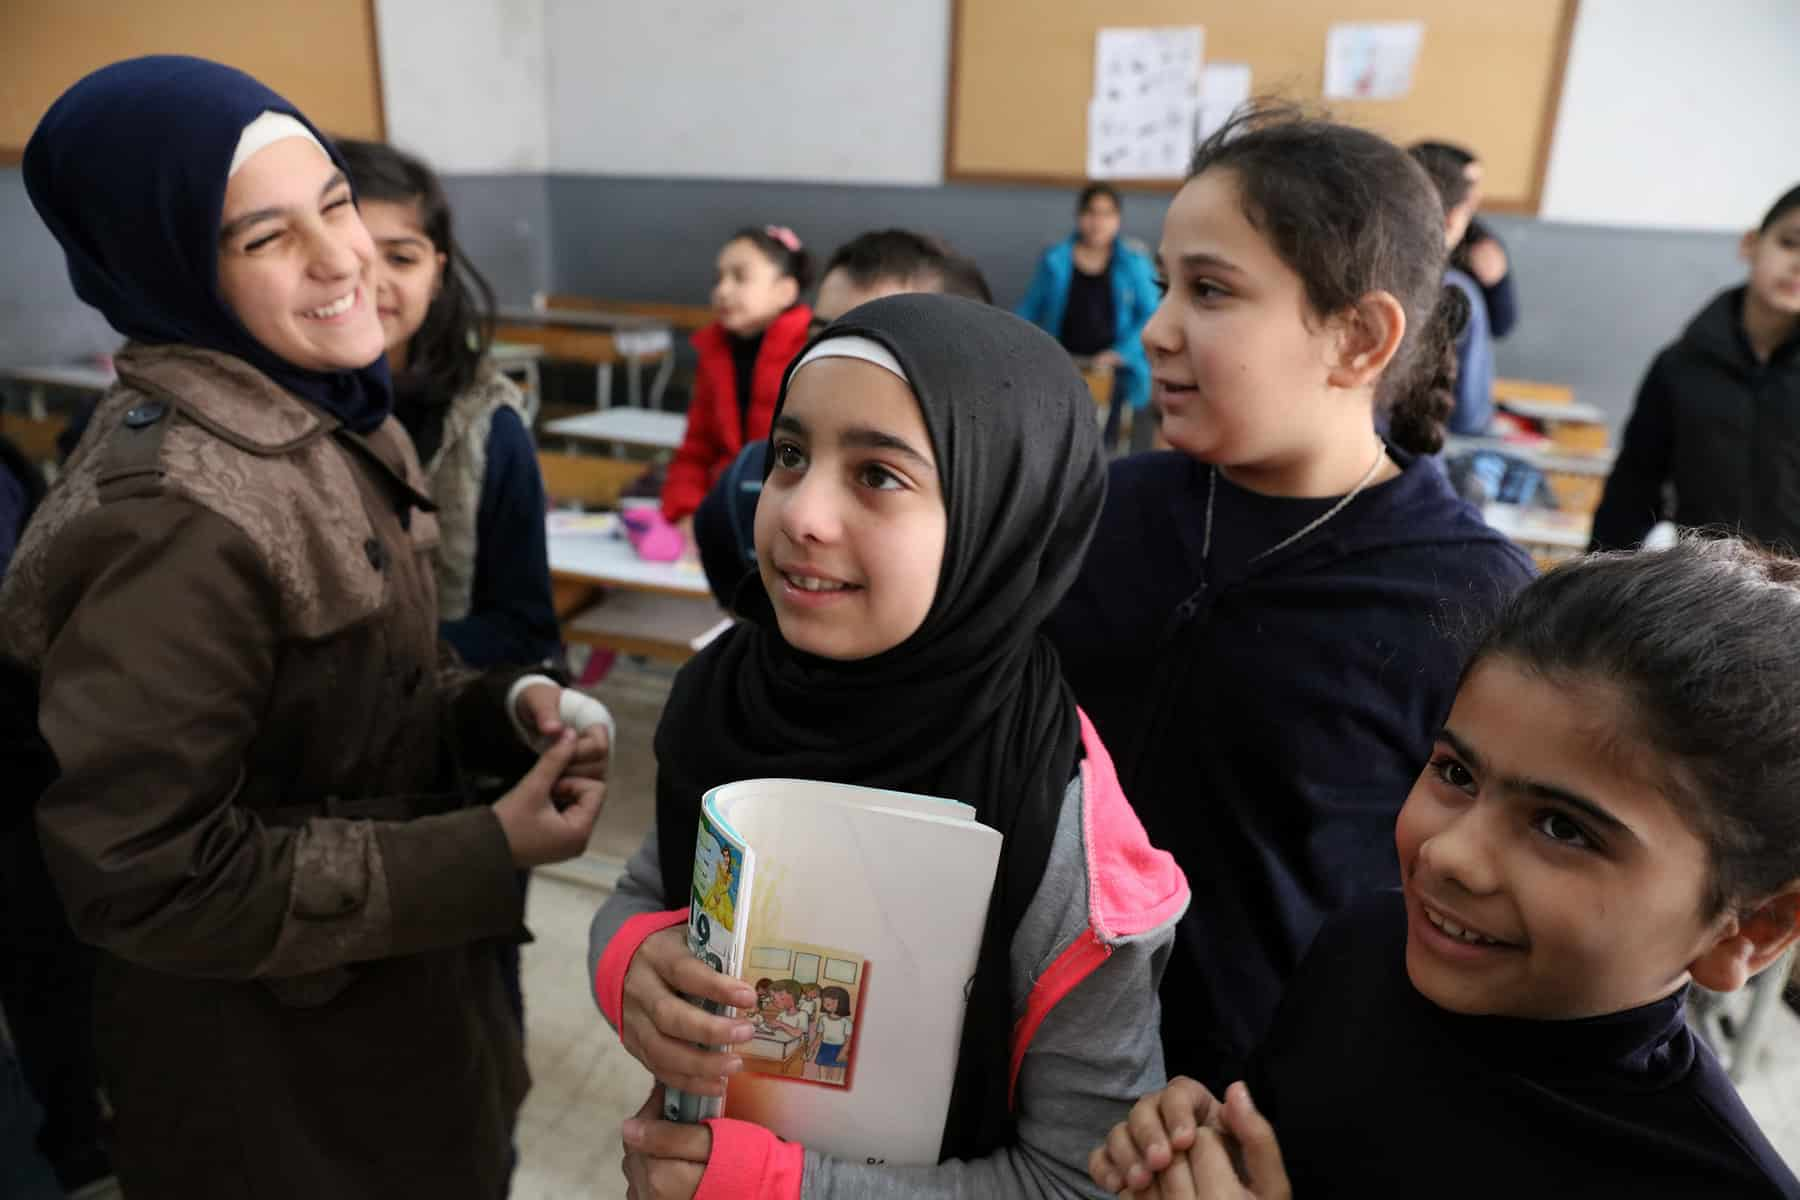 Students at school in Beirut, Lebanon. Two-thirds of the students at the school are Lebanese and one-third of the students are Syrian. Photo © Dominic Chavez/World Bank